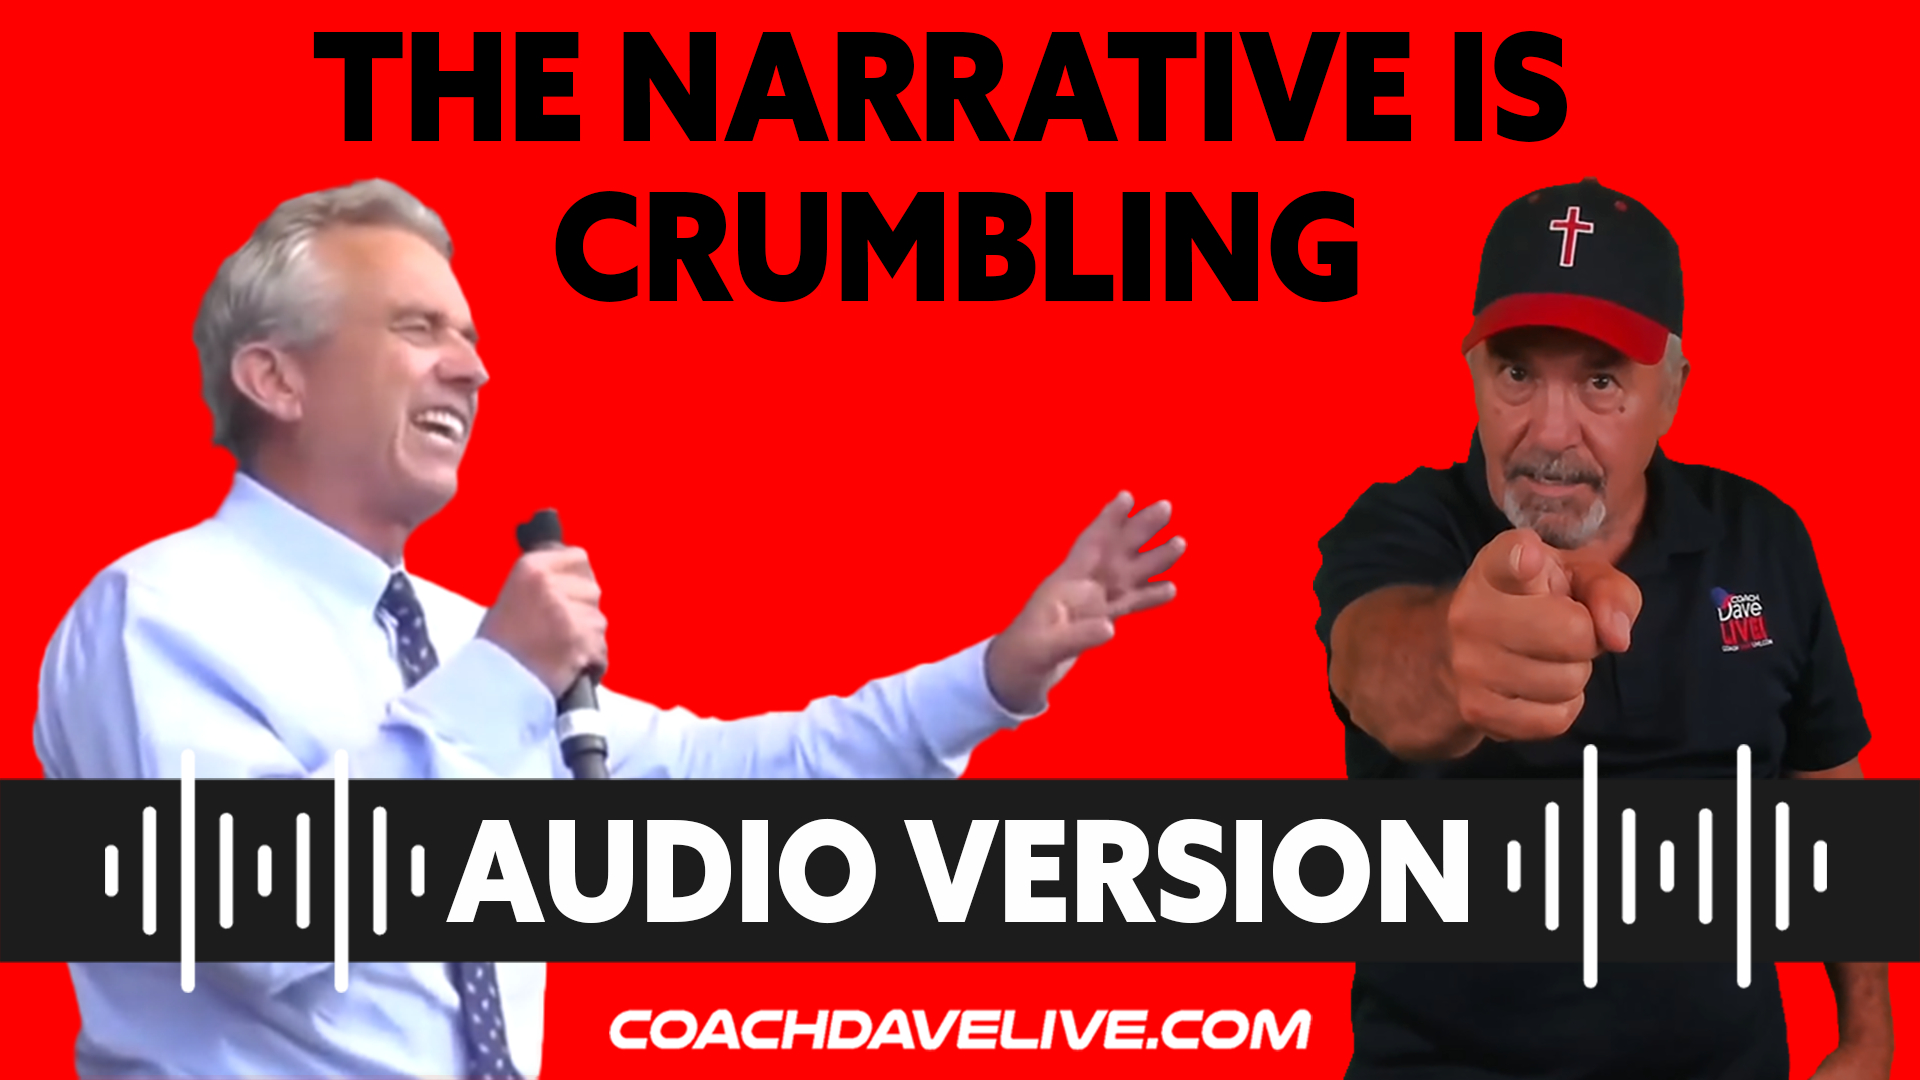 Coach Dave LIVE | 9-13-2021 | THE NARRATIVE IS CRUMBLING - AUDIO ONLY